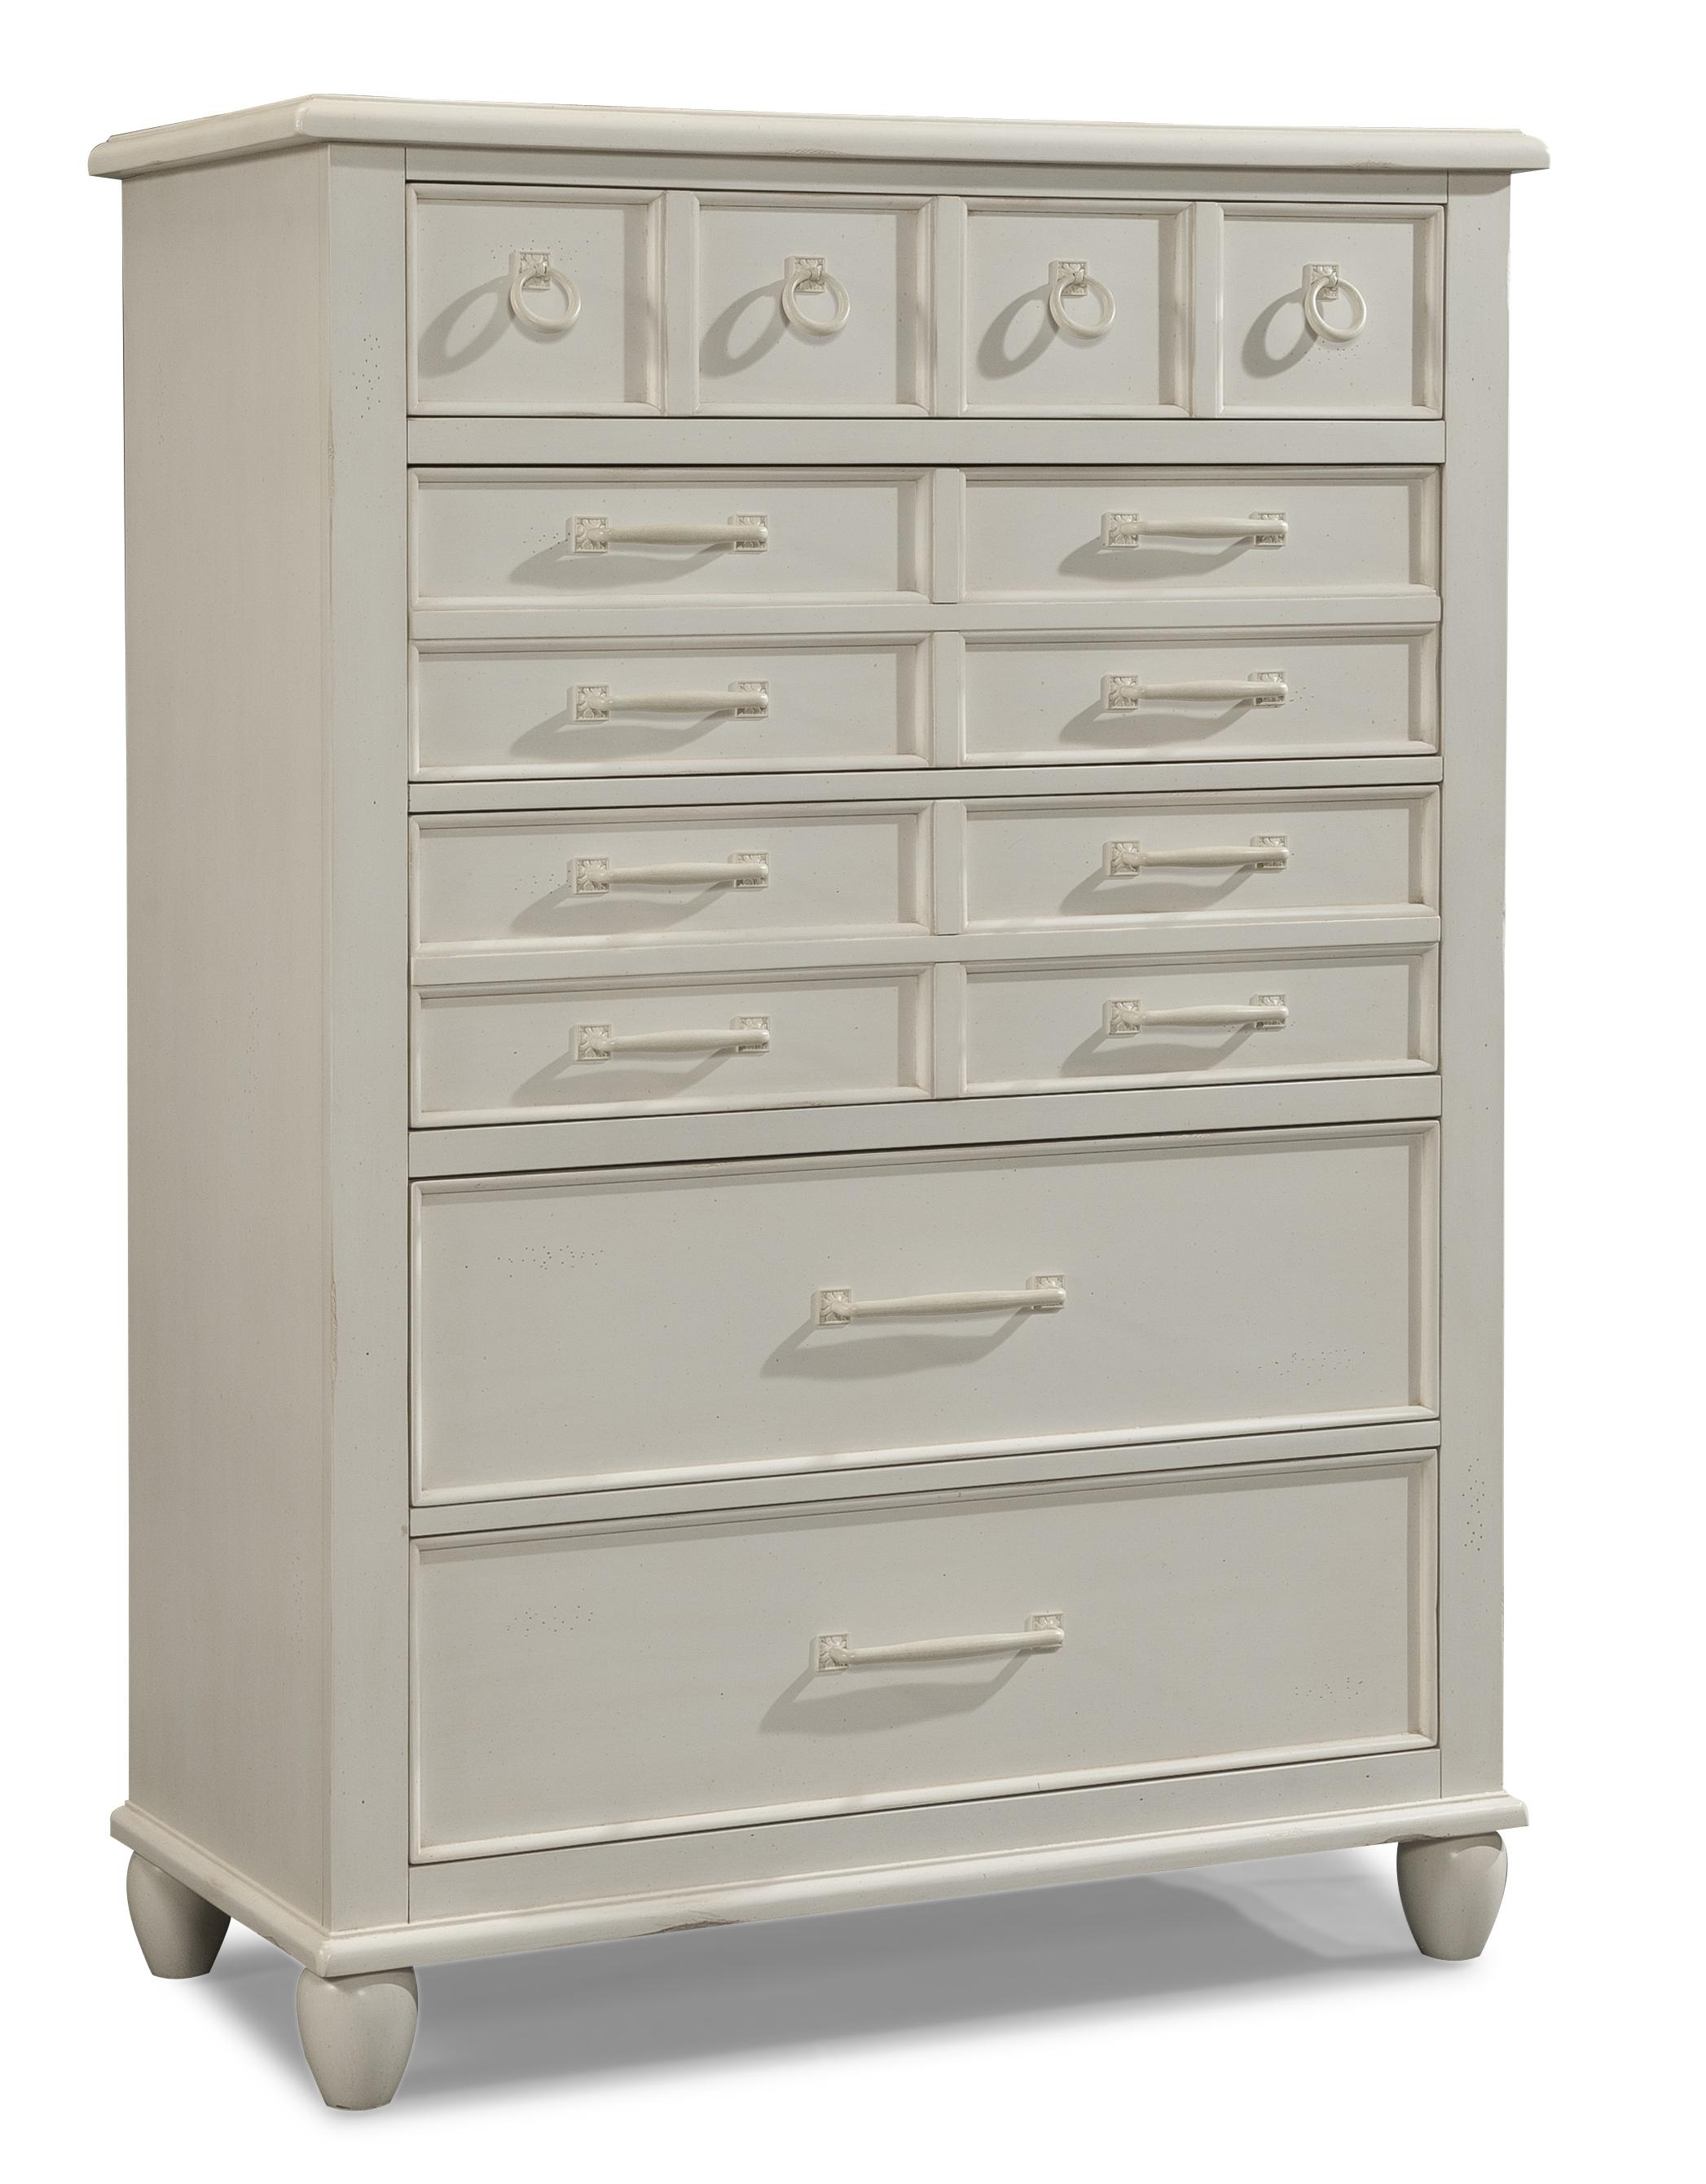 Easton Collection Sea Breeze White Drawer Chest - Item Number: 424-681 CHEST